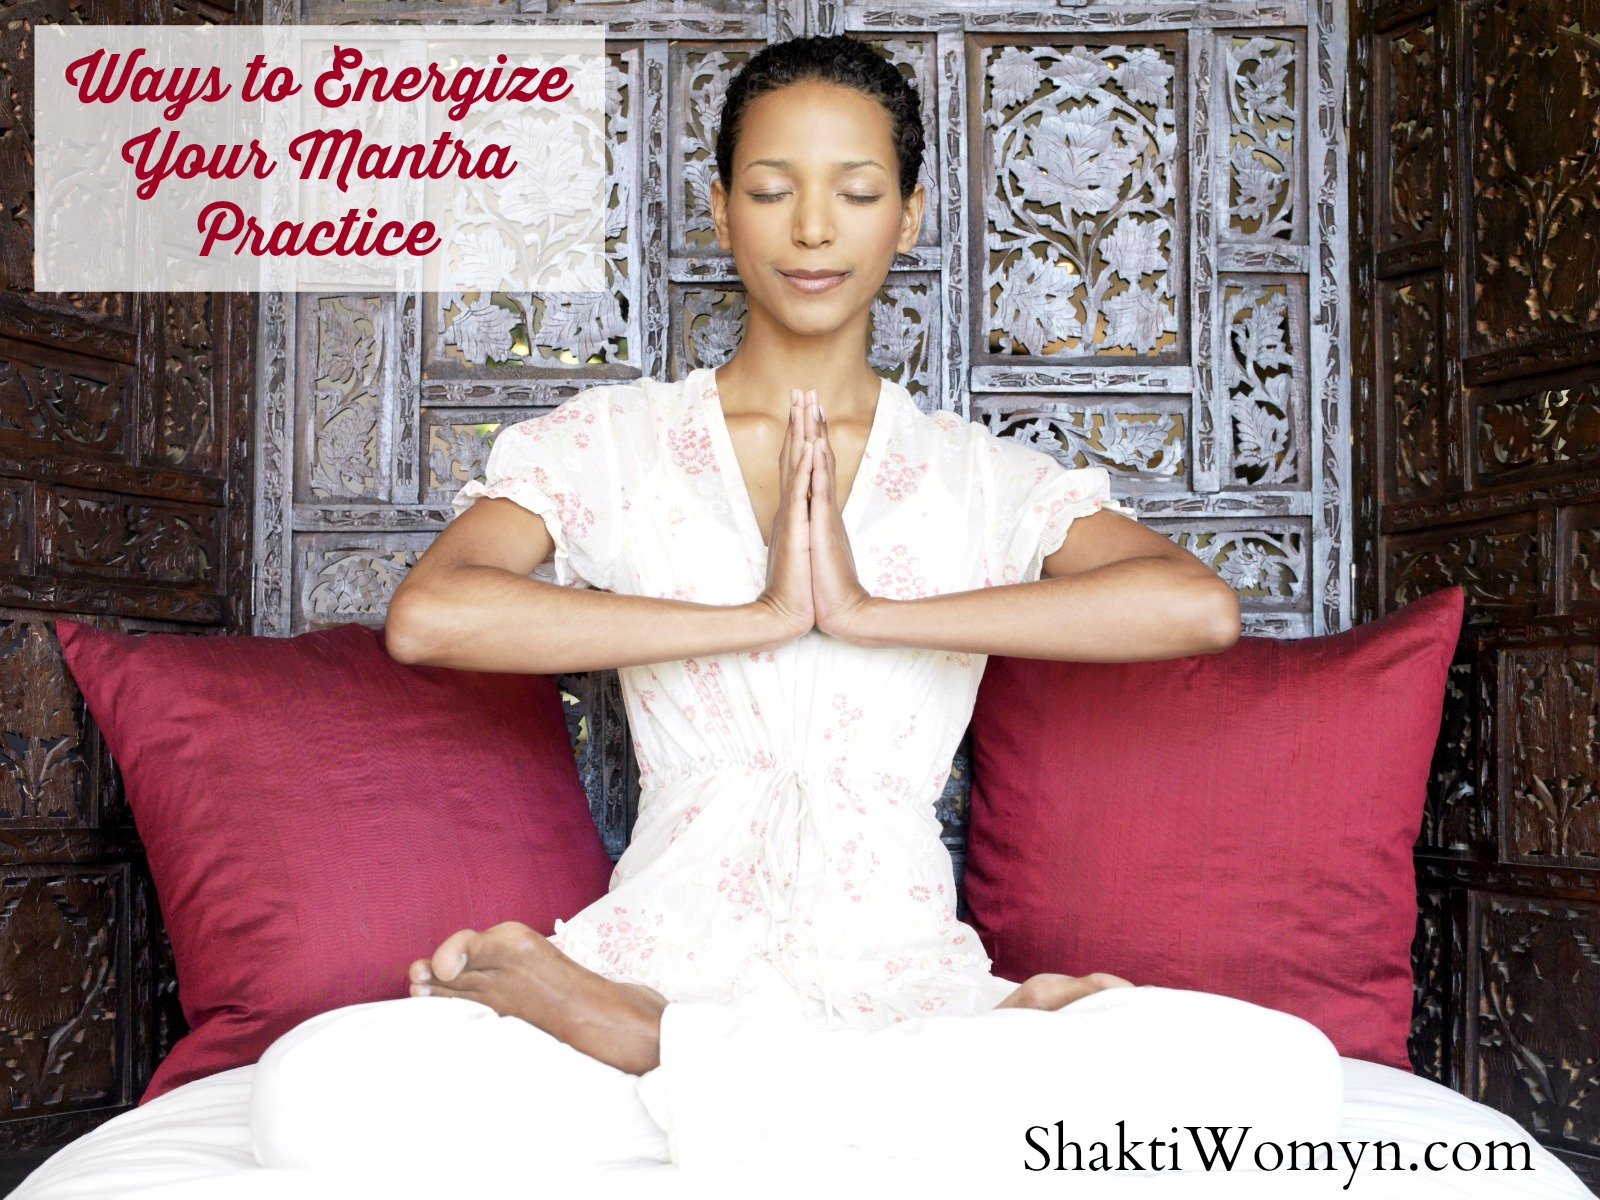 Ways to Energize or Start a Mantra Practice by Kimberly F Moore Shakti Womyn